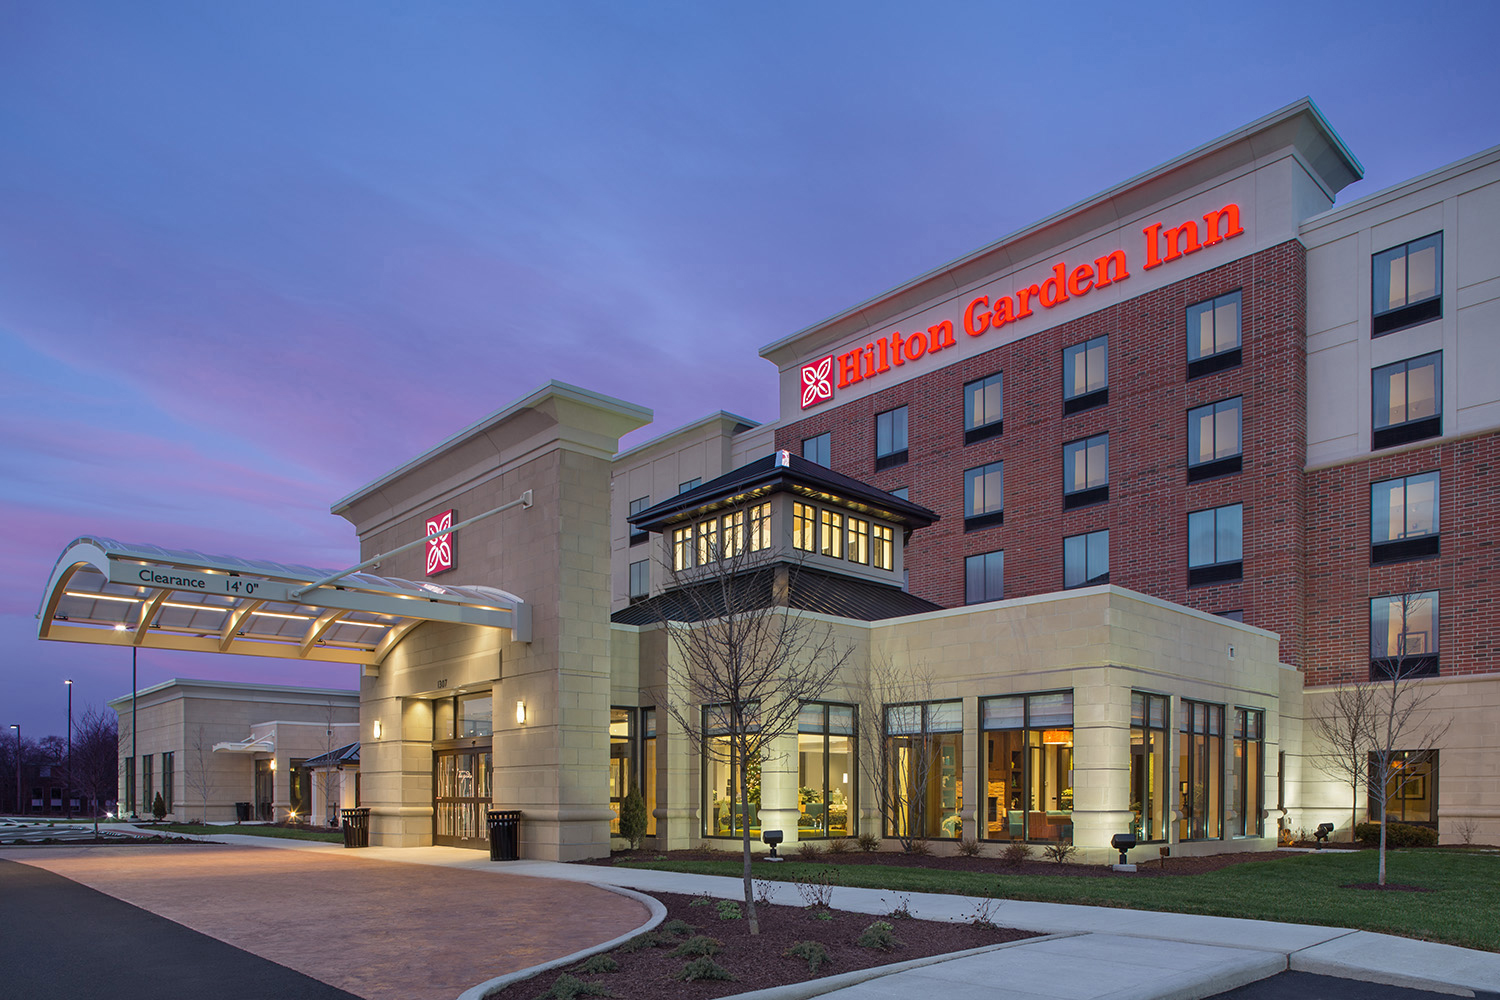 Hilton Garden Inn Akron Oh Kaczmar Architects Incorporated